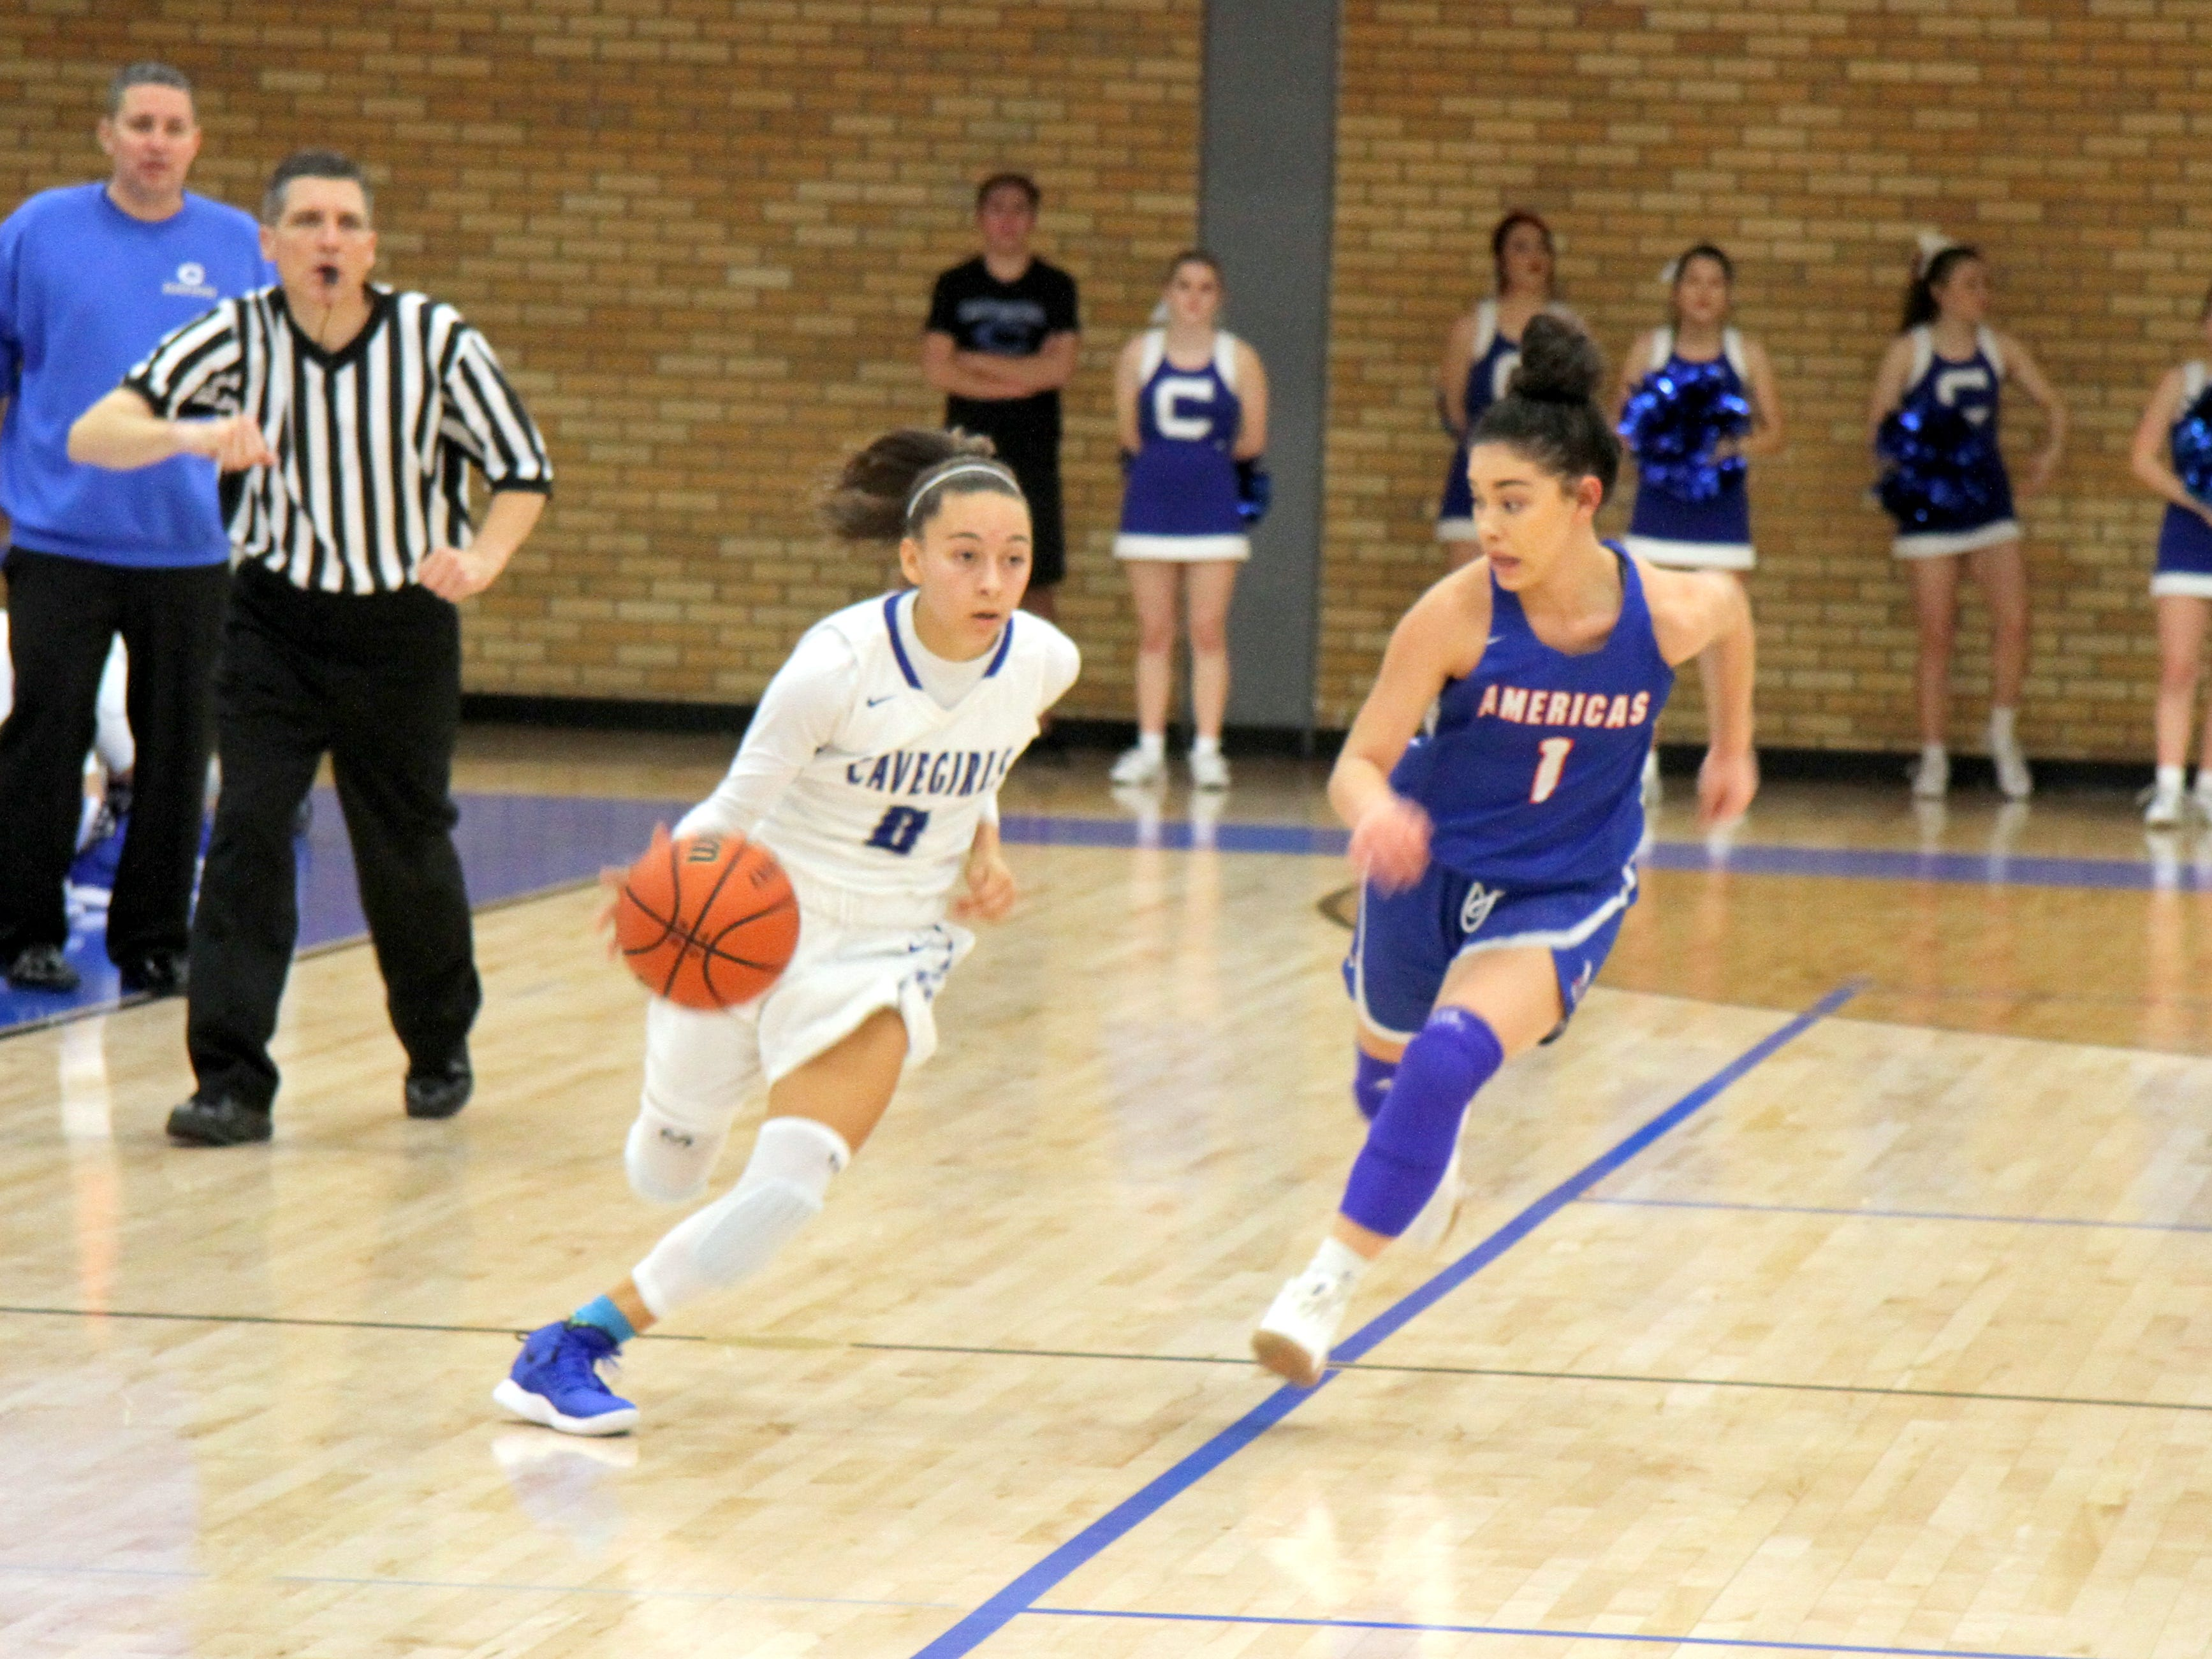 Baylee Molina sprints by a defender during Monday's game. Molina scored three points and had eight assists in Carlbad's win over Americas.